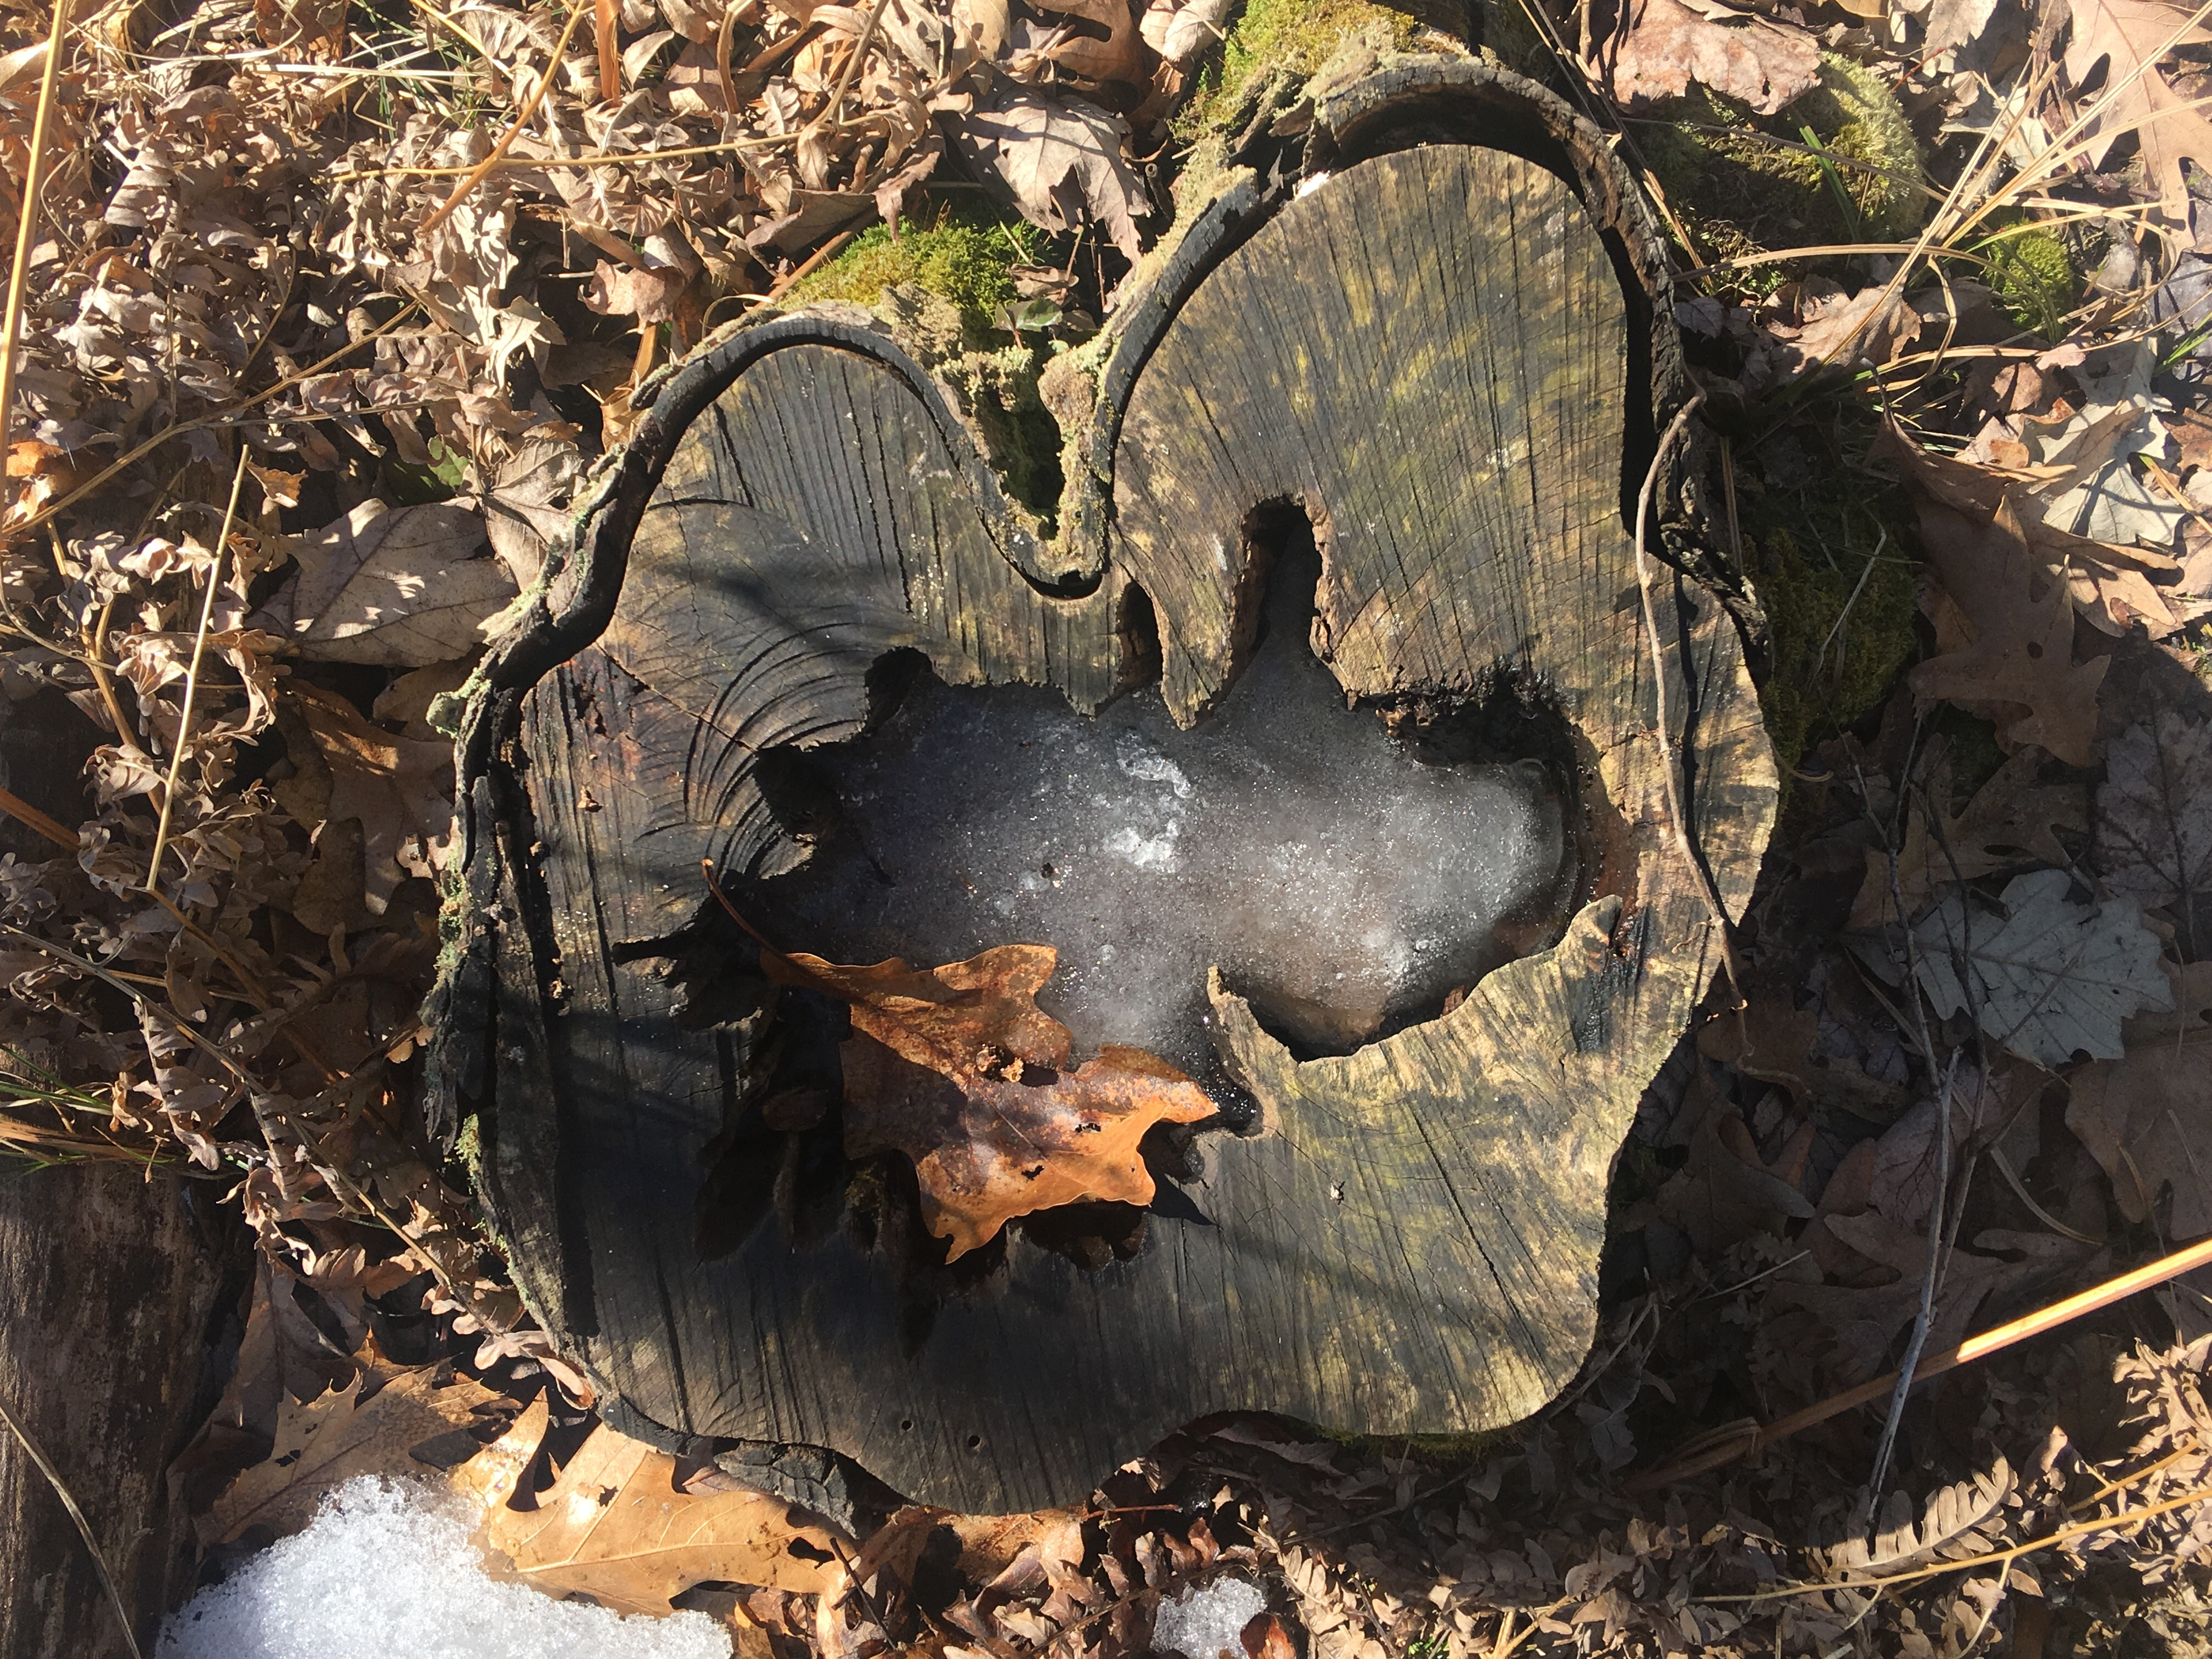 Albion's Trails – The Whitehouse Nature Center